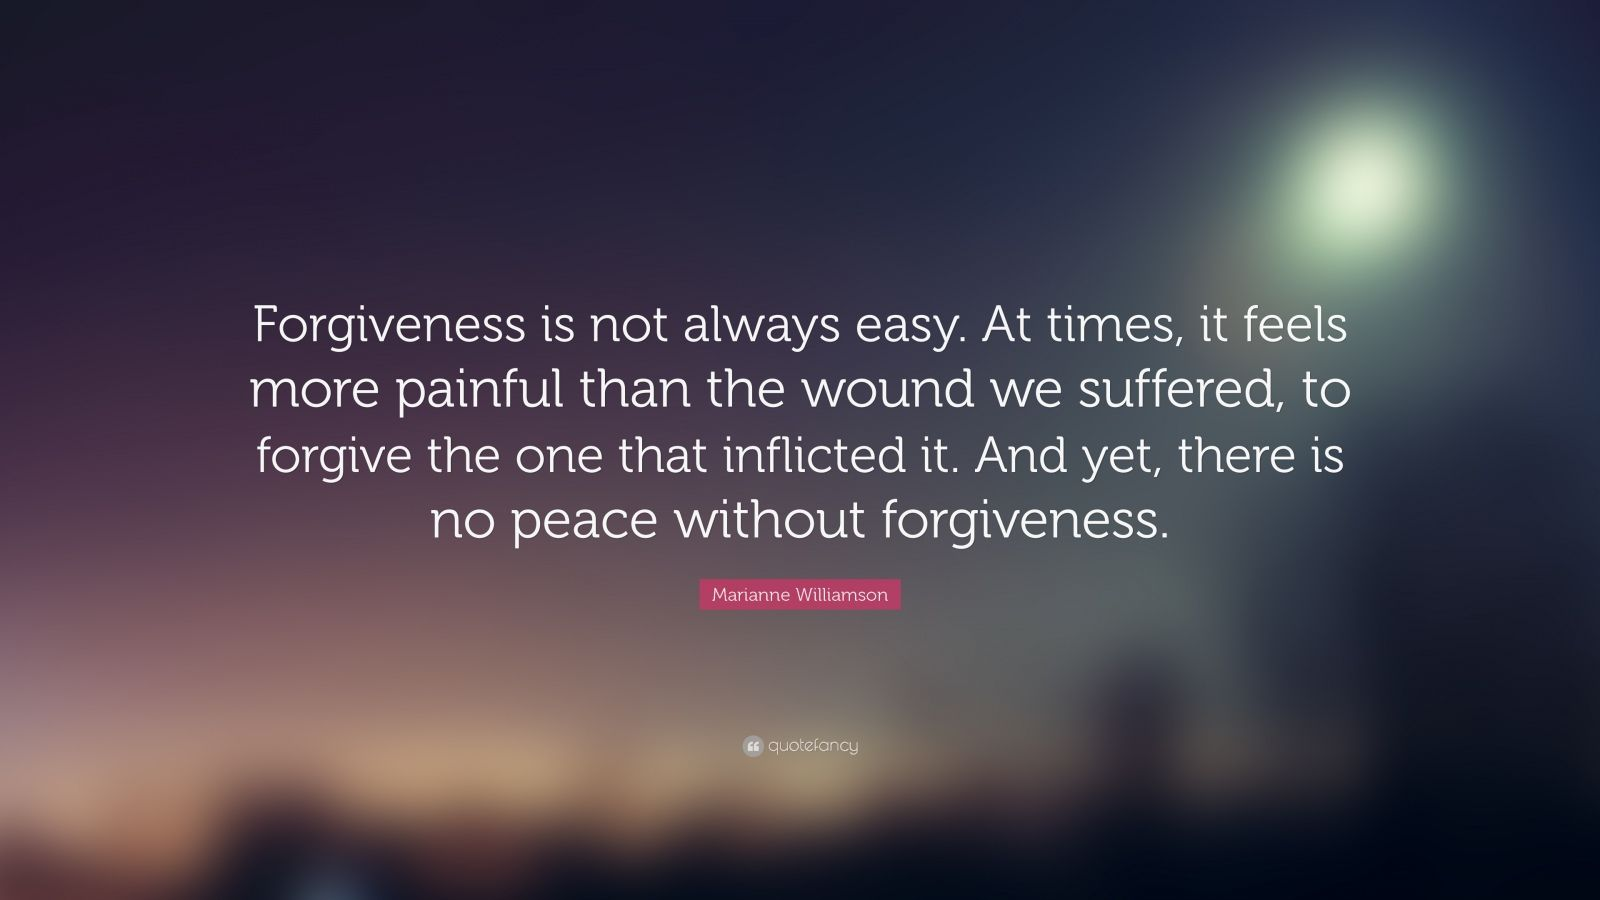 """Marianne Williamson Quote: """"Forgiveness is not always easy. At times, it feels more painful than the wound we suffered, to forgive the one that inflicted it. And yet, there is no peace without forgiveness."""""""